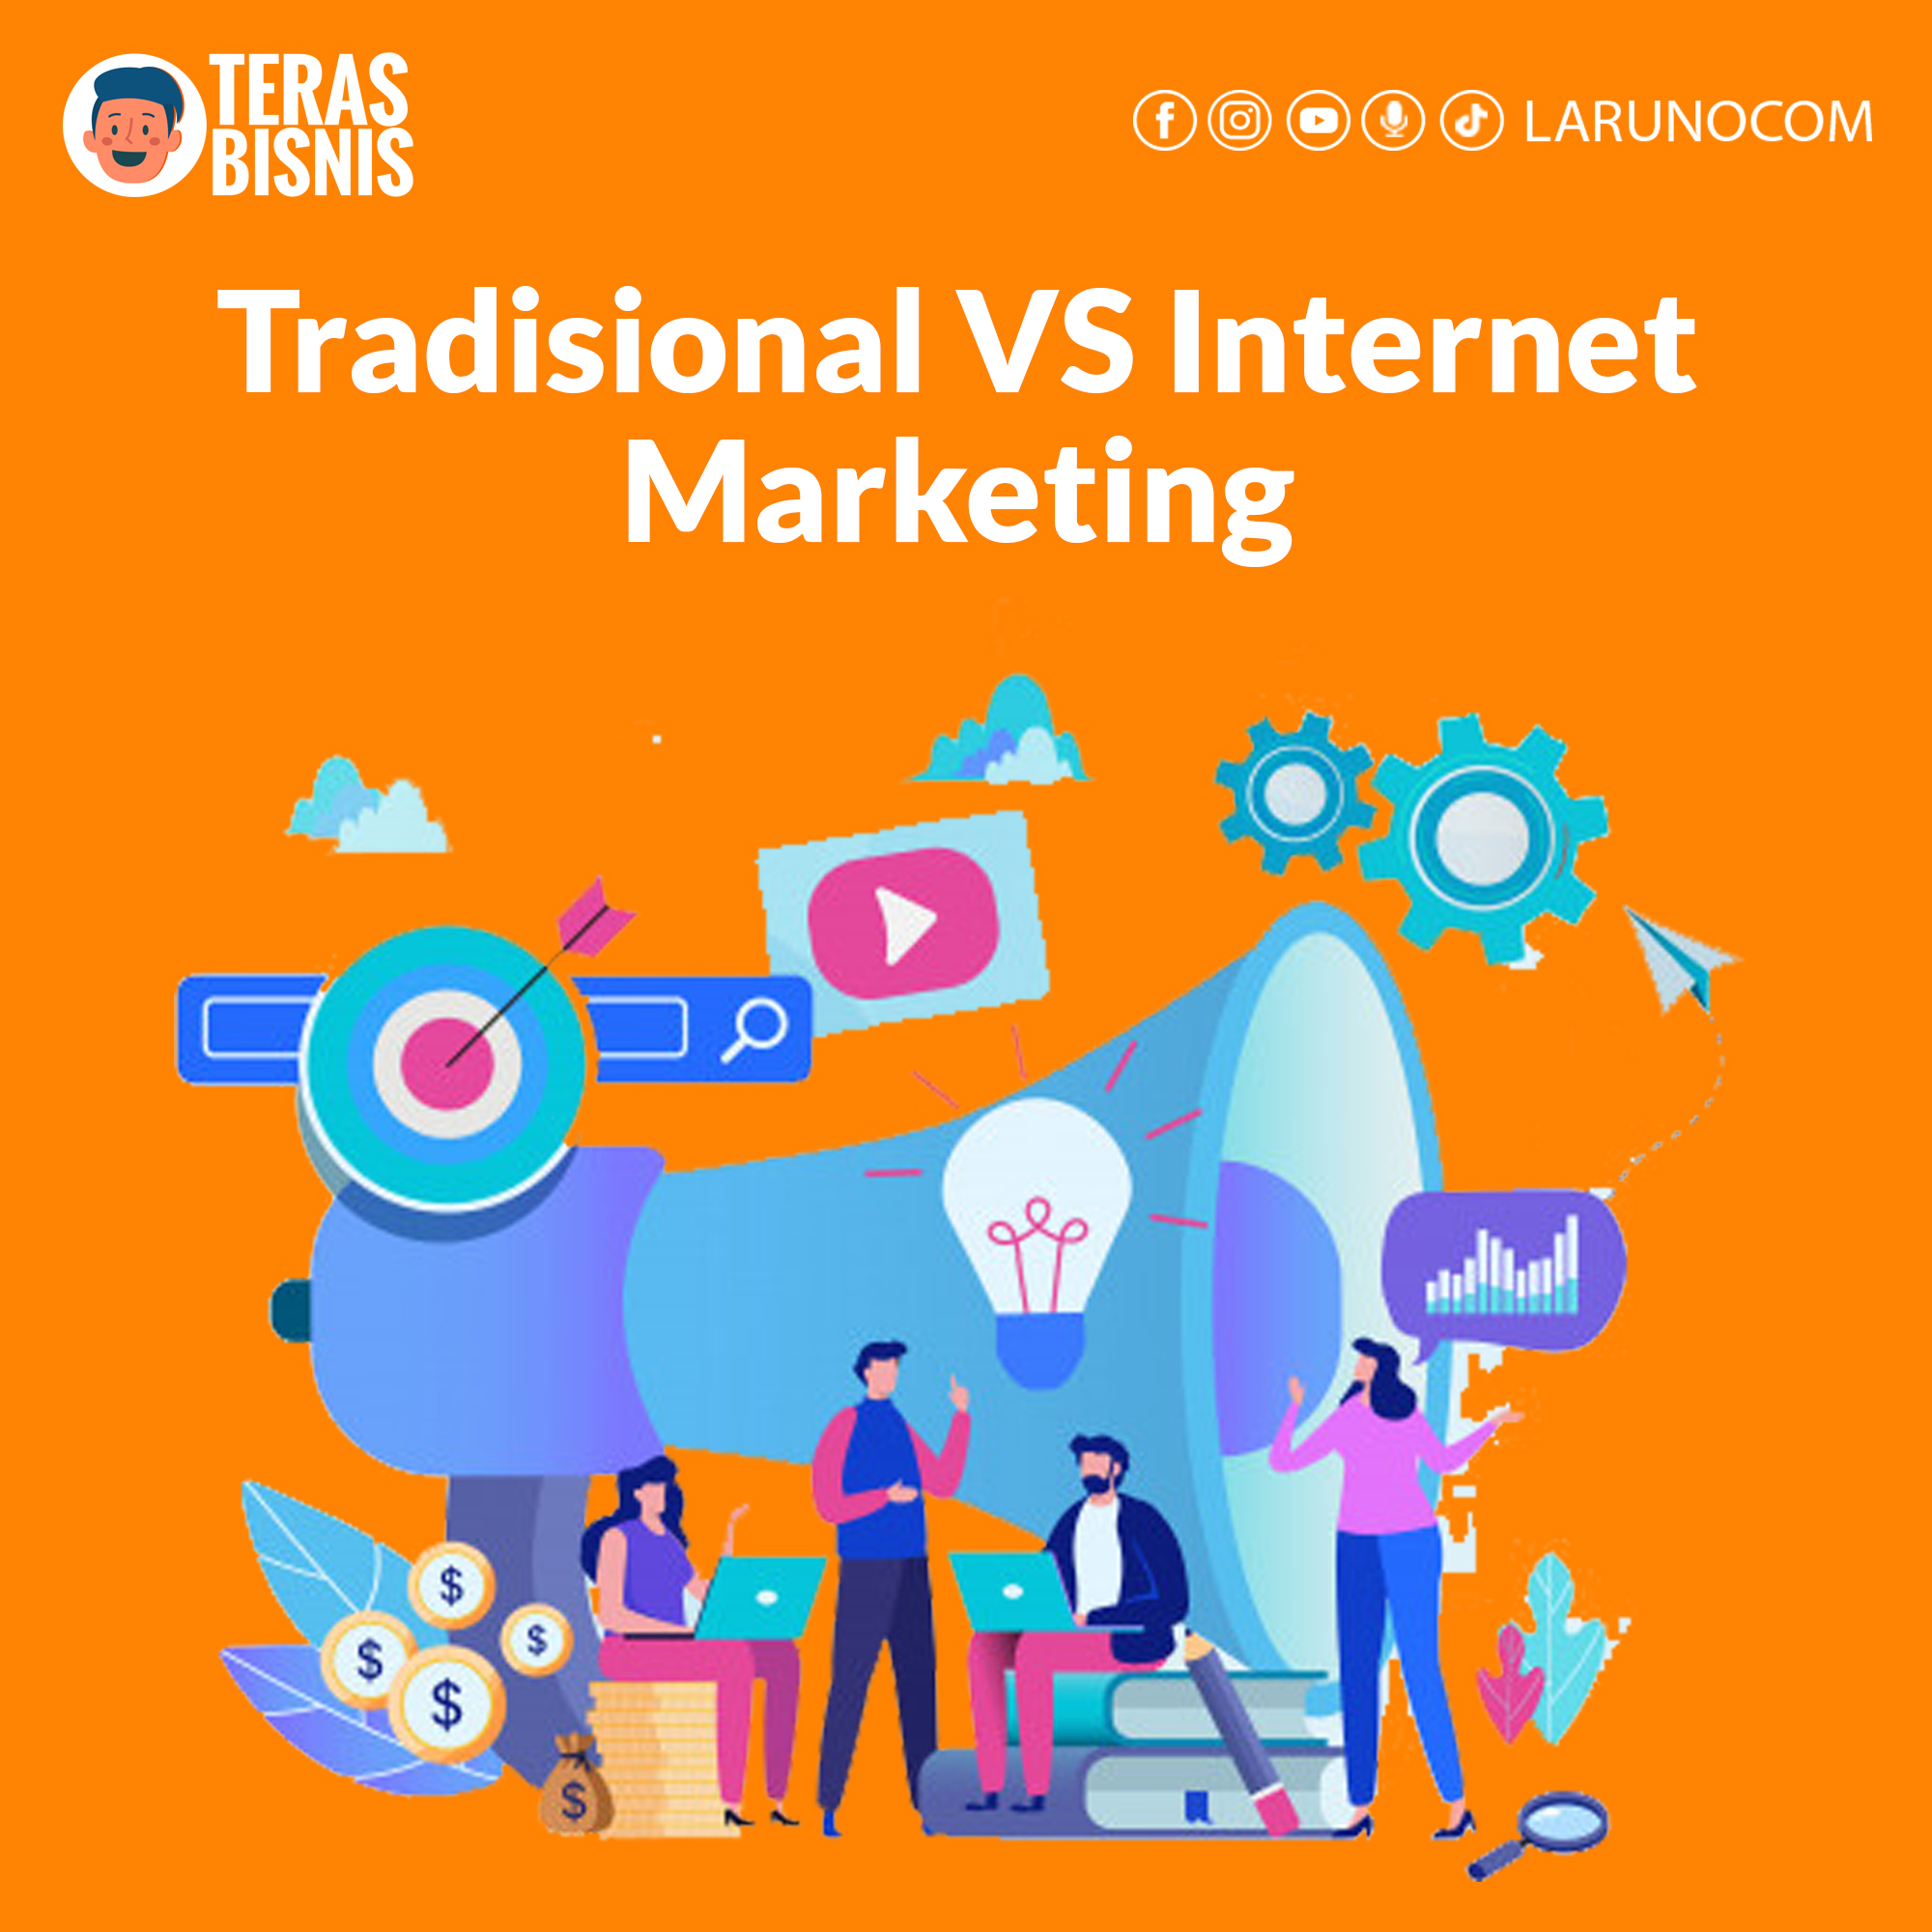 Tradisional VS Internet Marketing